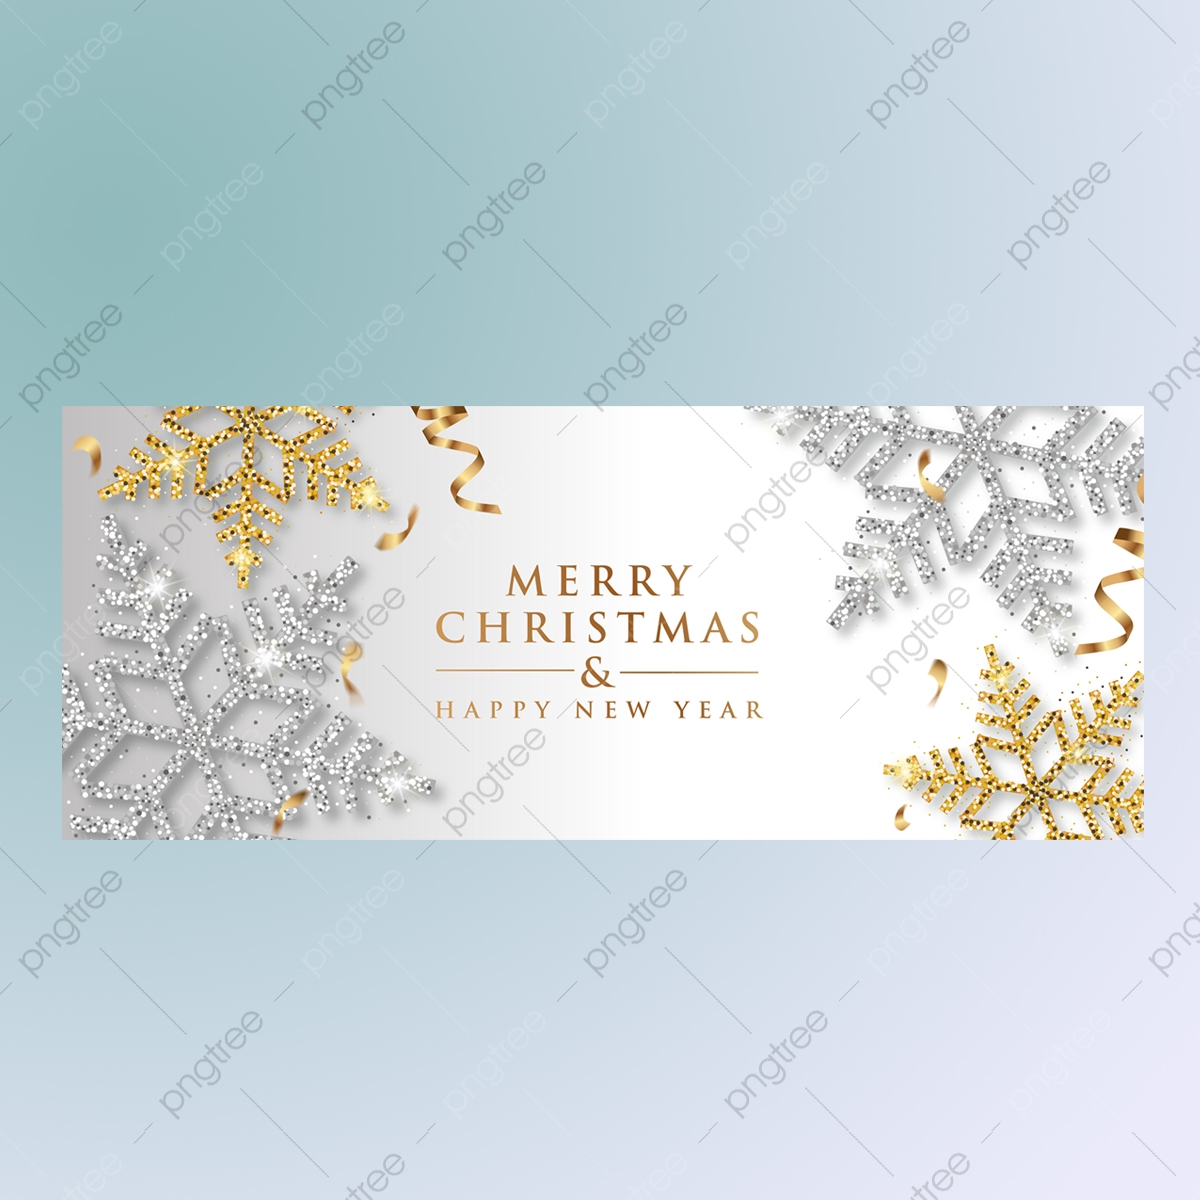 merry christmas and happy new year banner template for free download on pngtree happy new year banner template